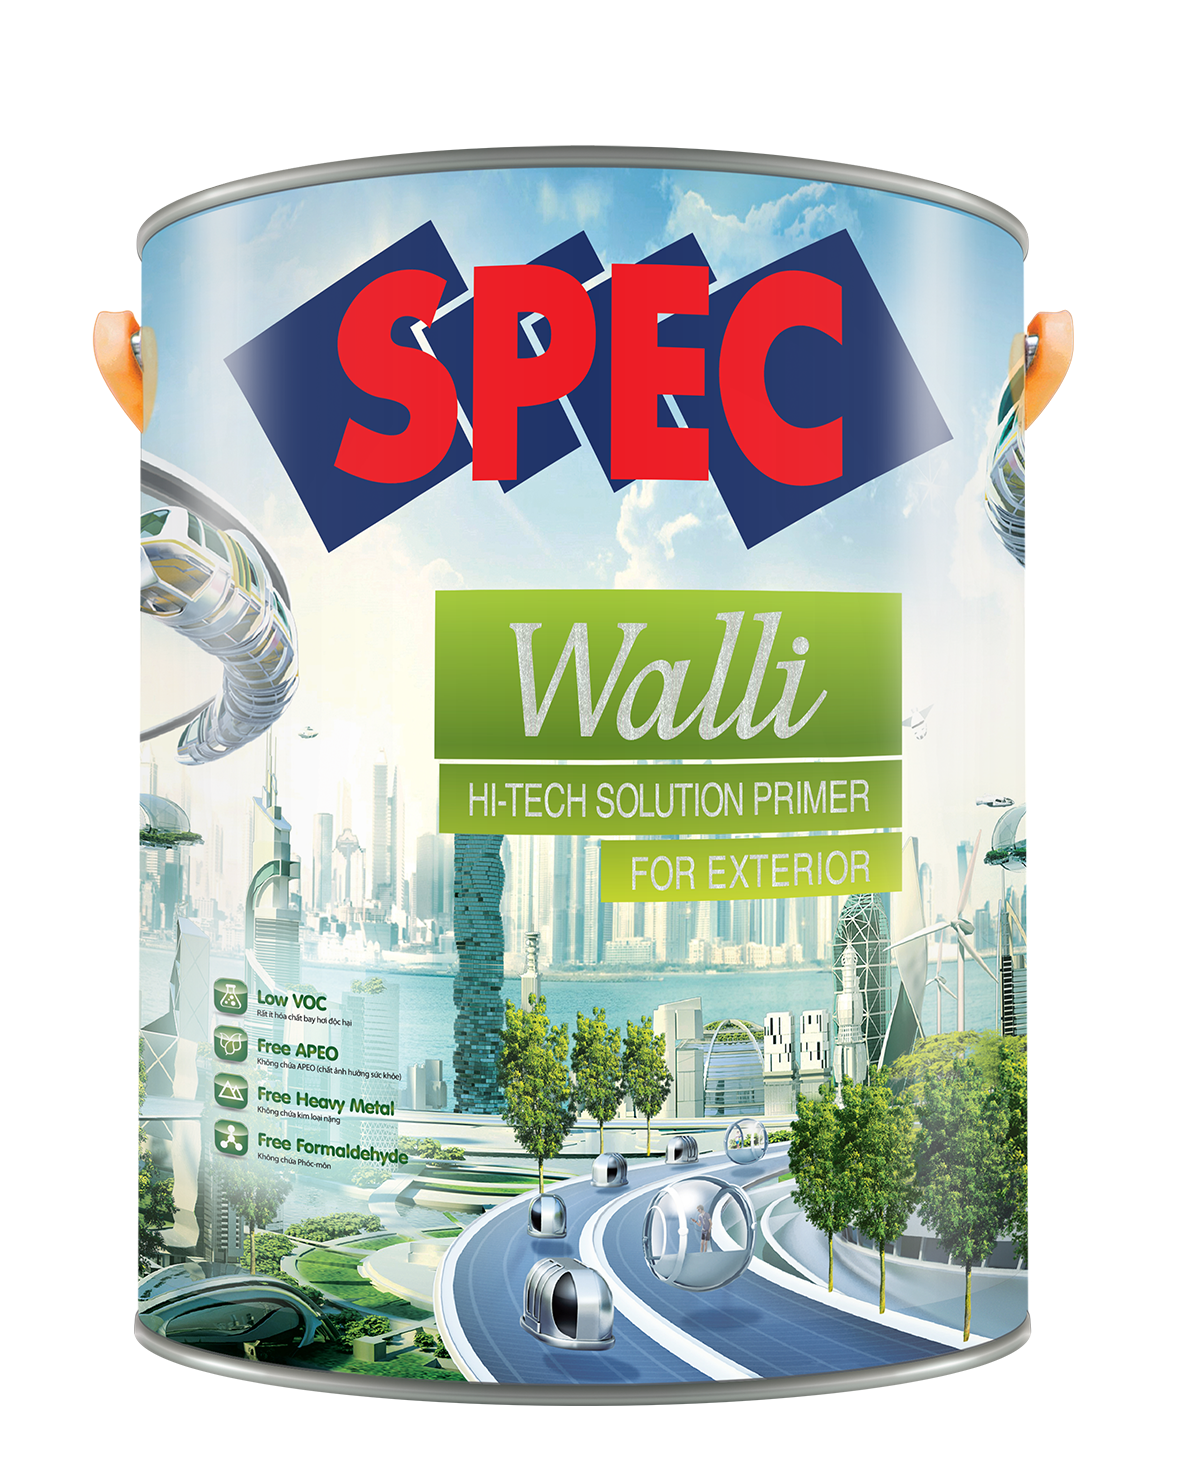 SPEC WALLI HI - TECH SOLUTION PRIMER FOR EXTERIOR